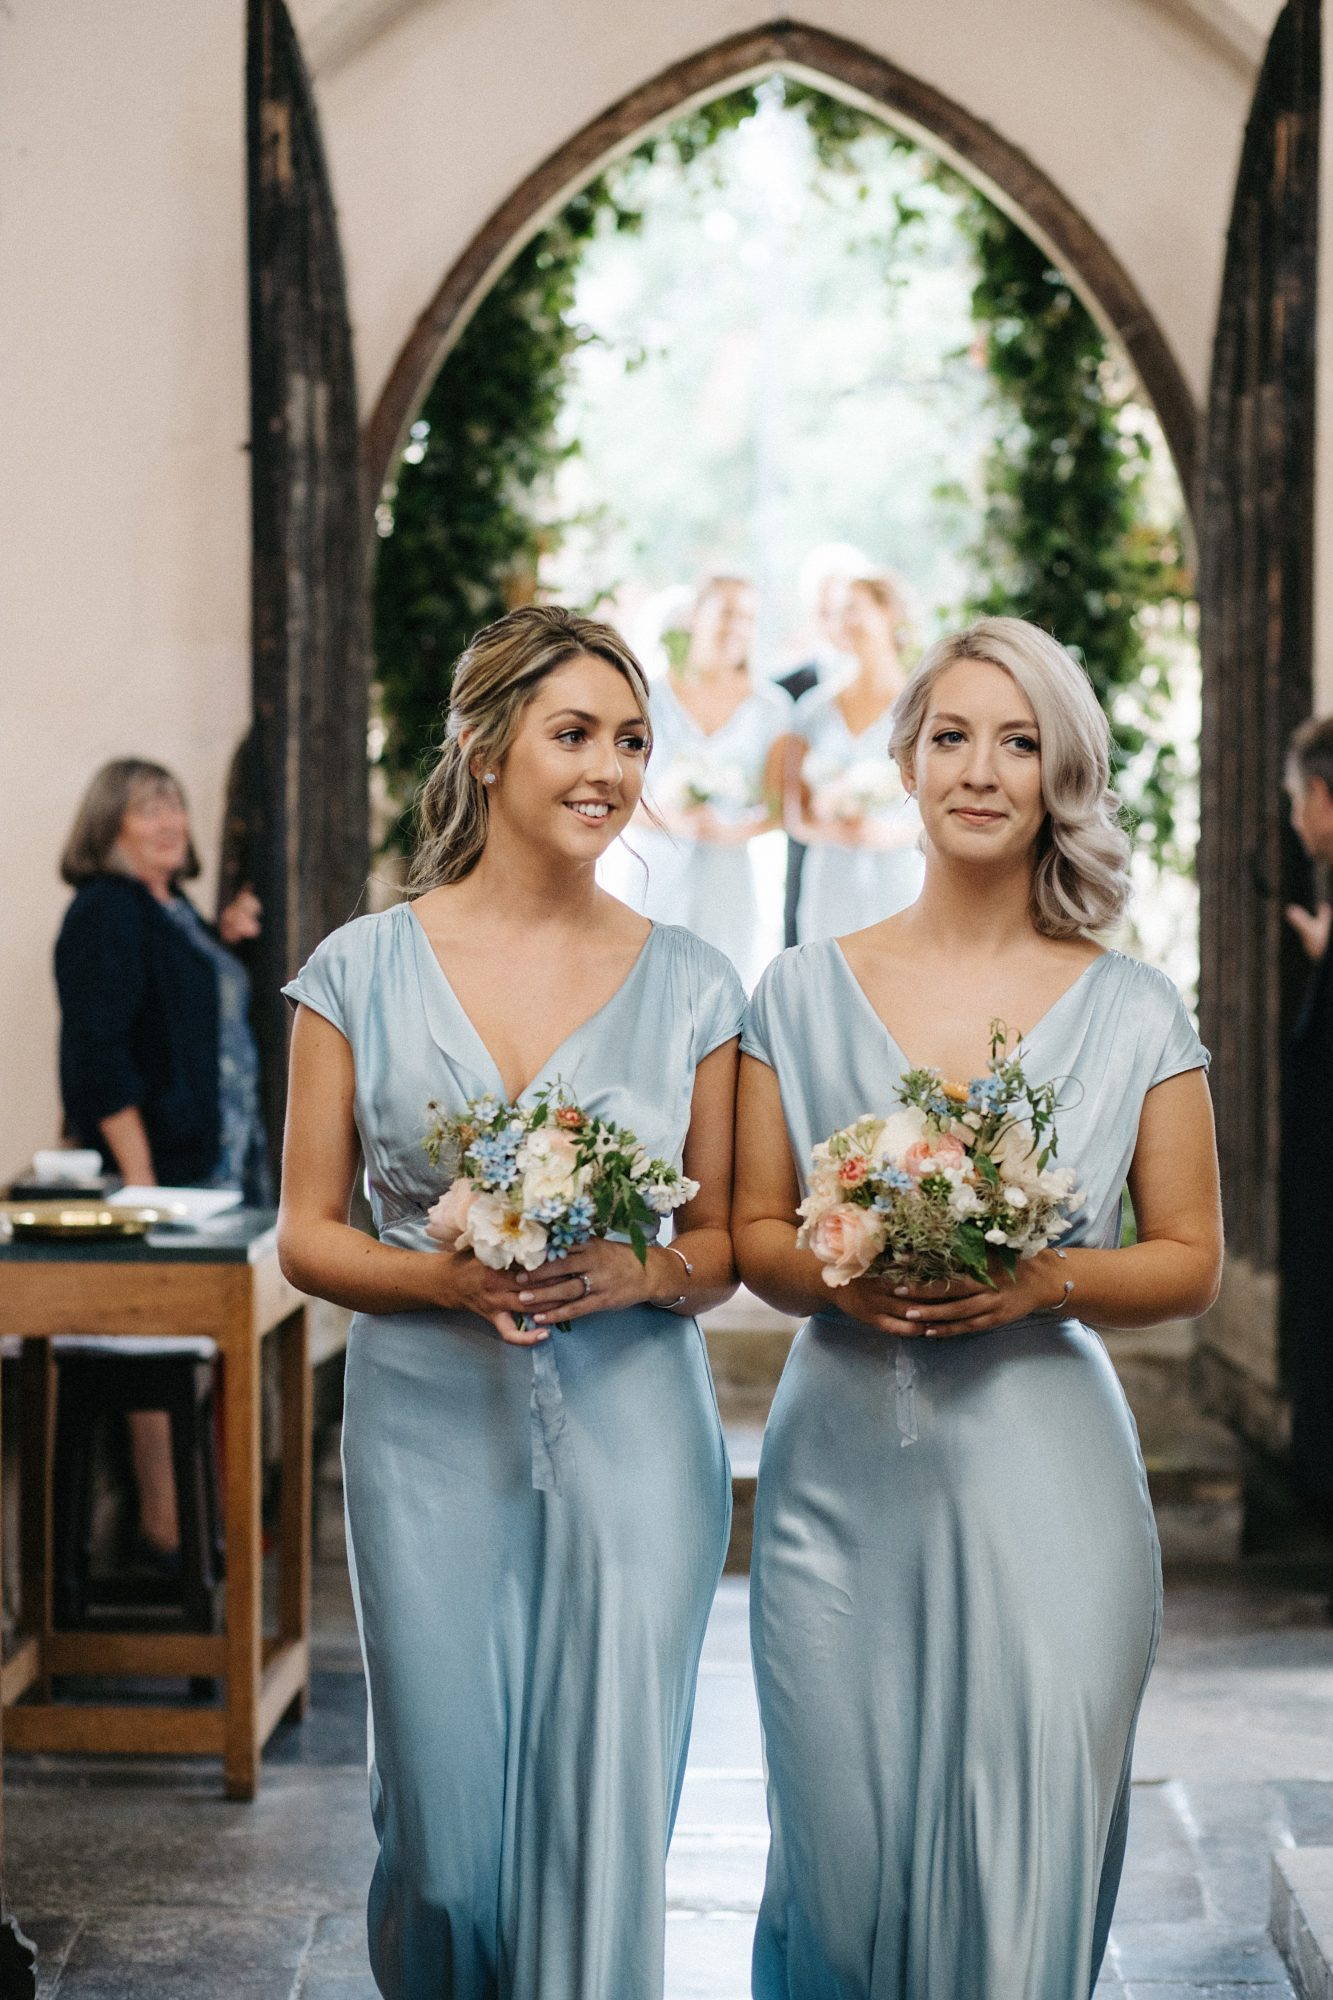 laurie lee wedding bridesmaids in blue attire with floral bouquets